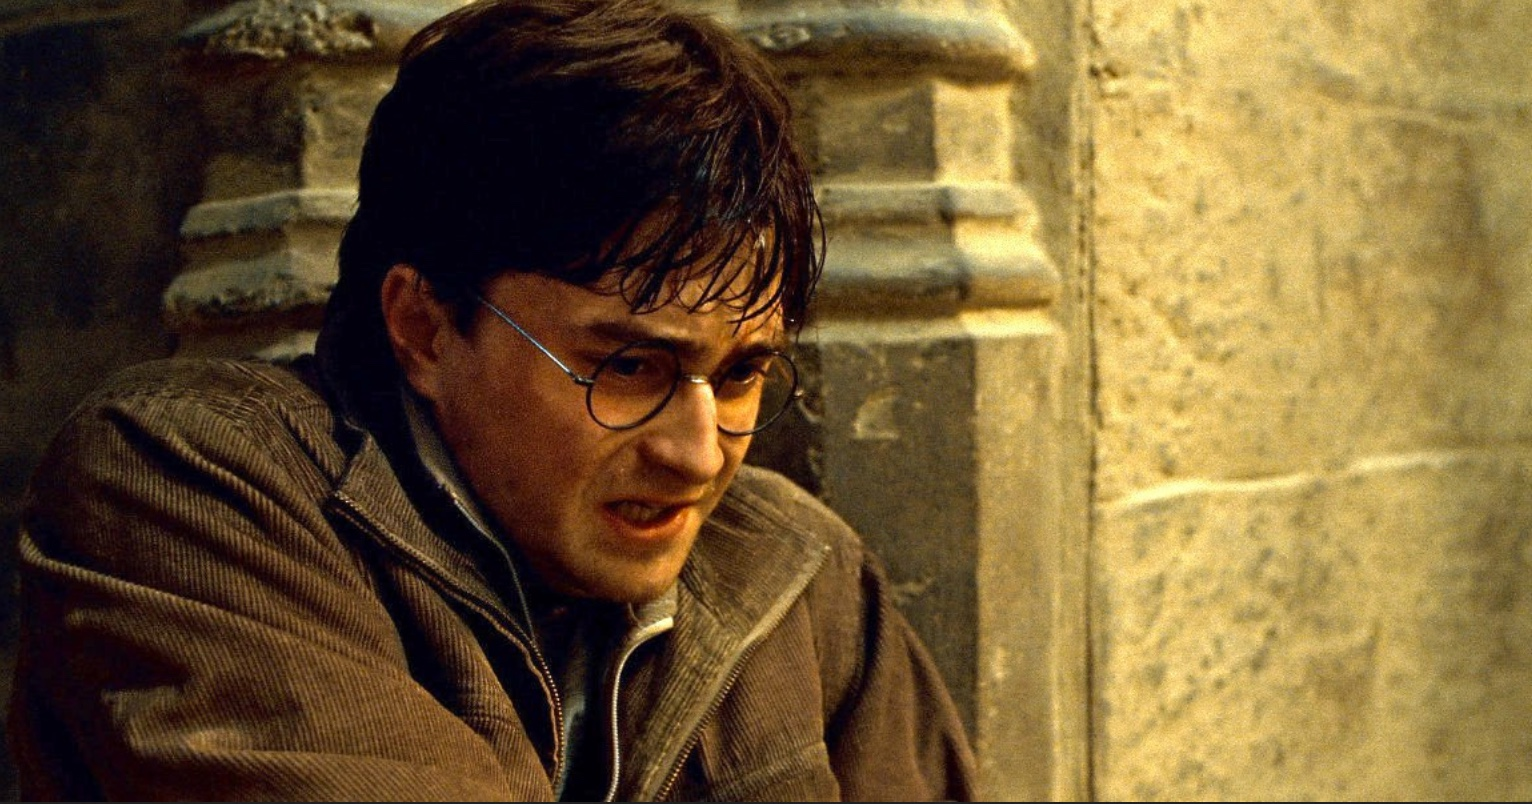 Harry Potter and the Deathly Hallows Part 2 02